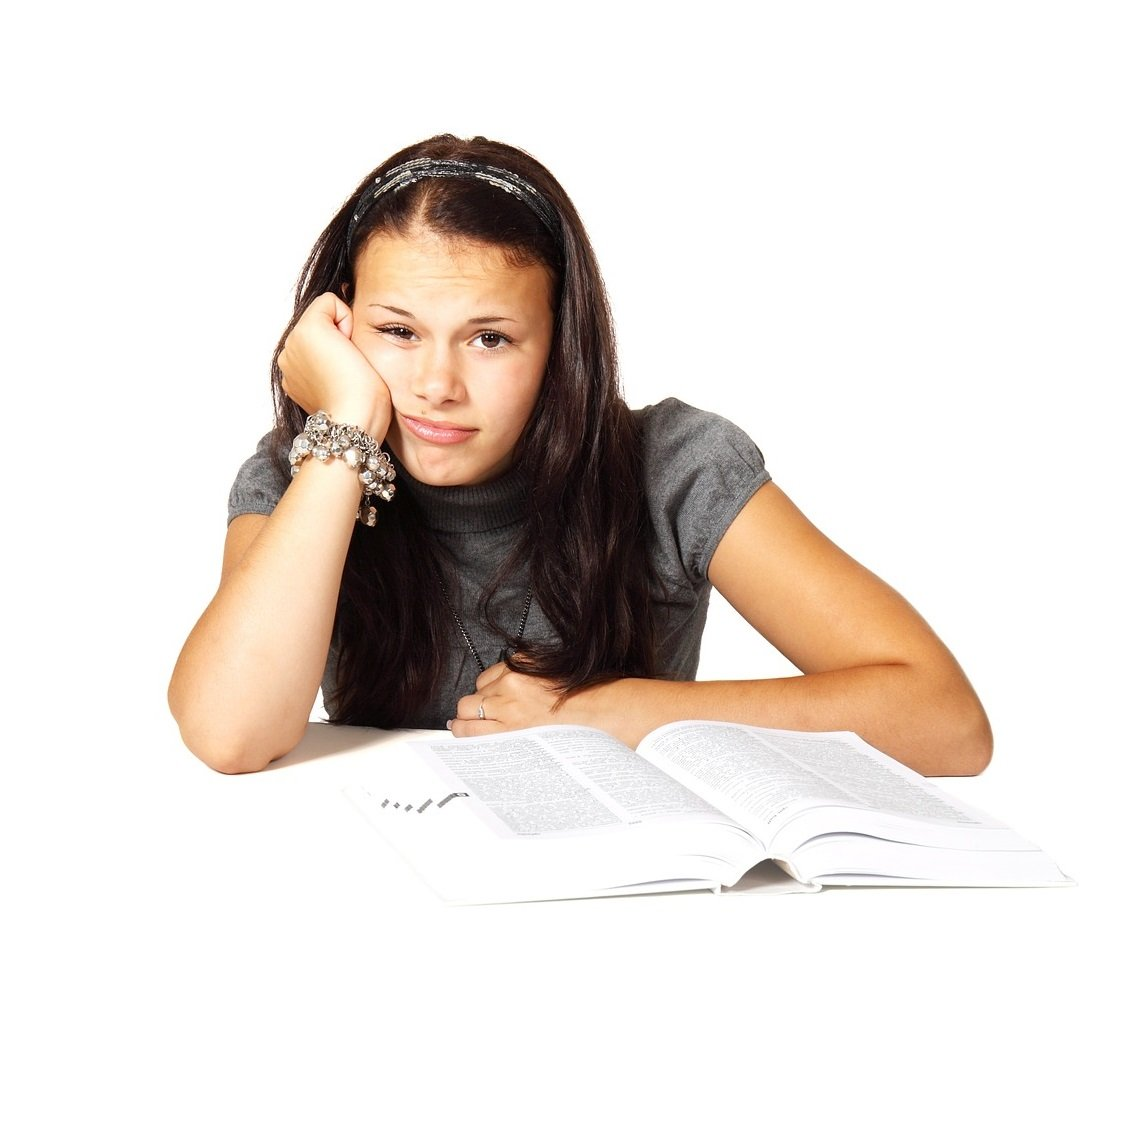 purpose of exemplification essay Some readers expect an academic exemplification essay to be written primarily, if not almost entirely, in the third person consider your audience and your purpose before you generate and organize examples.